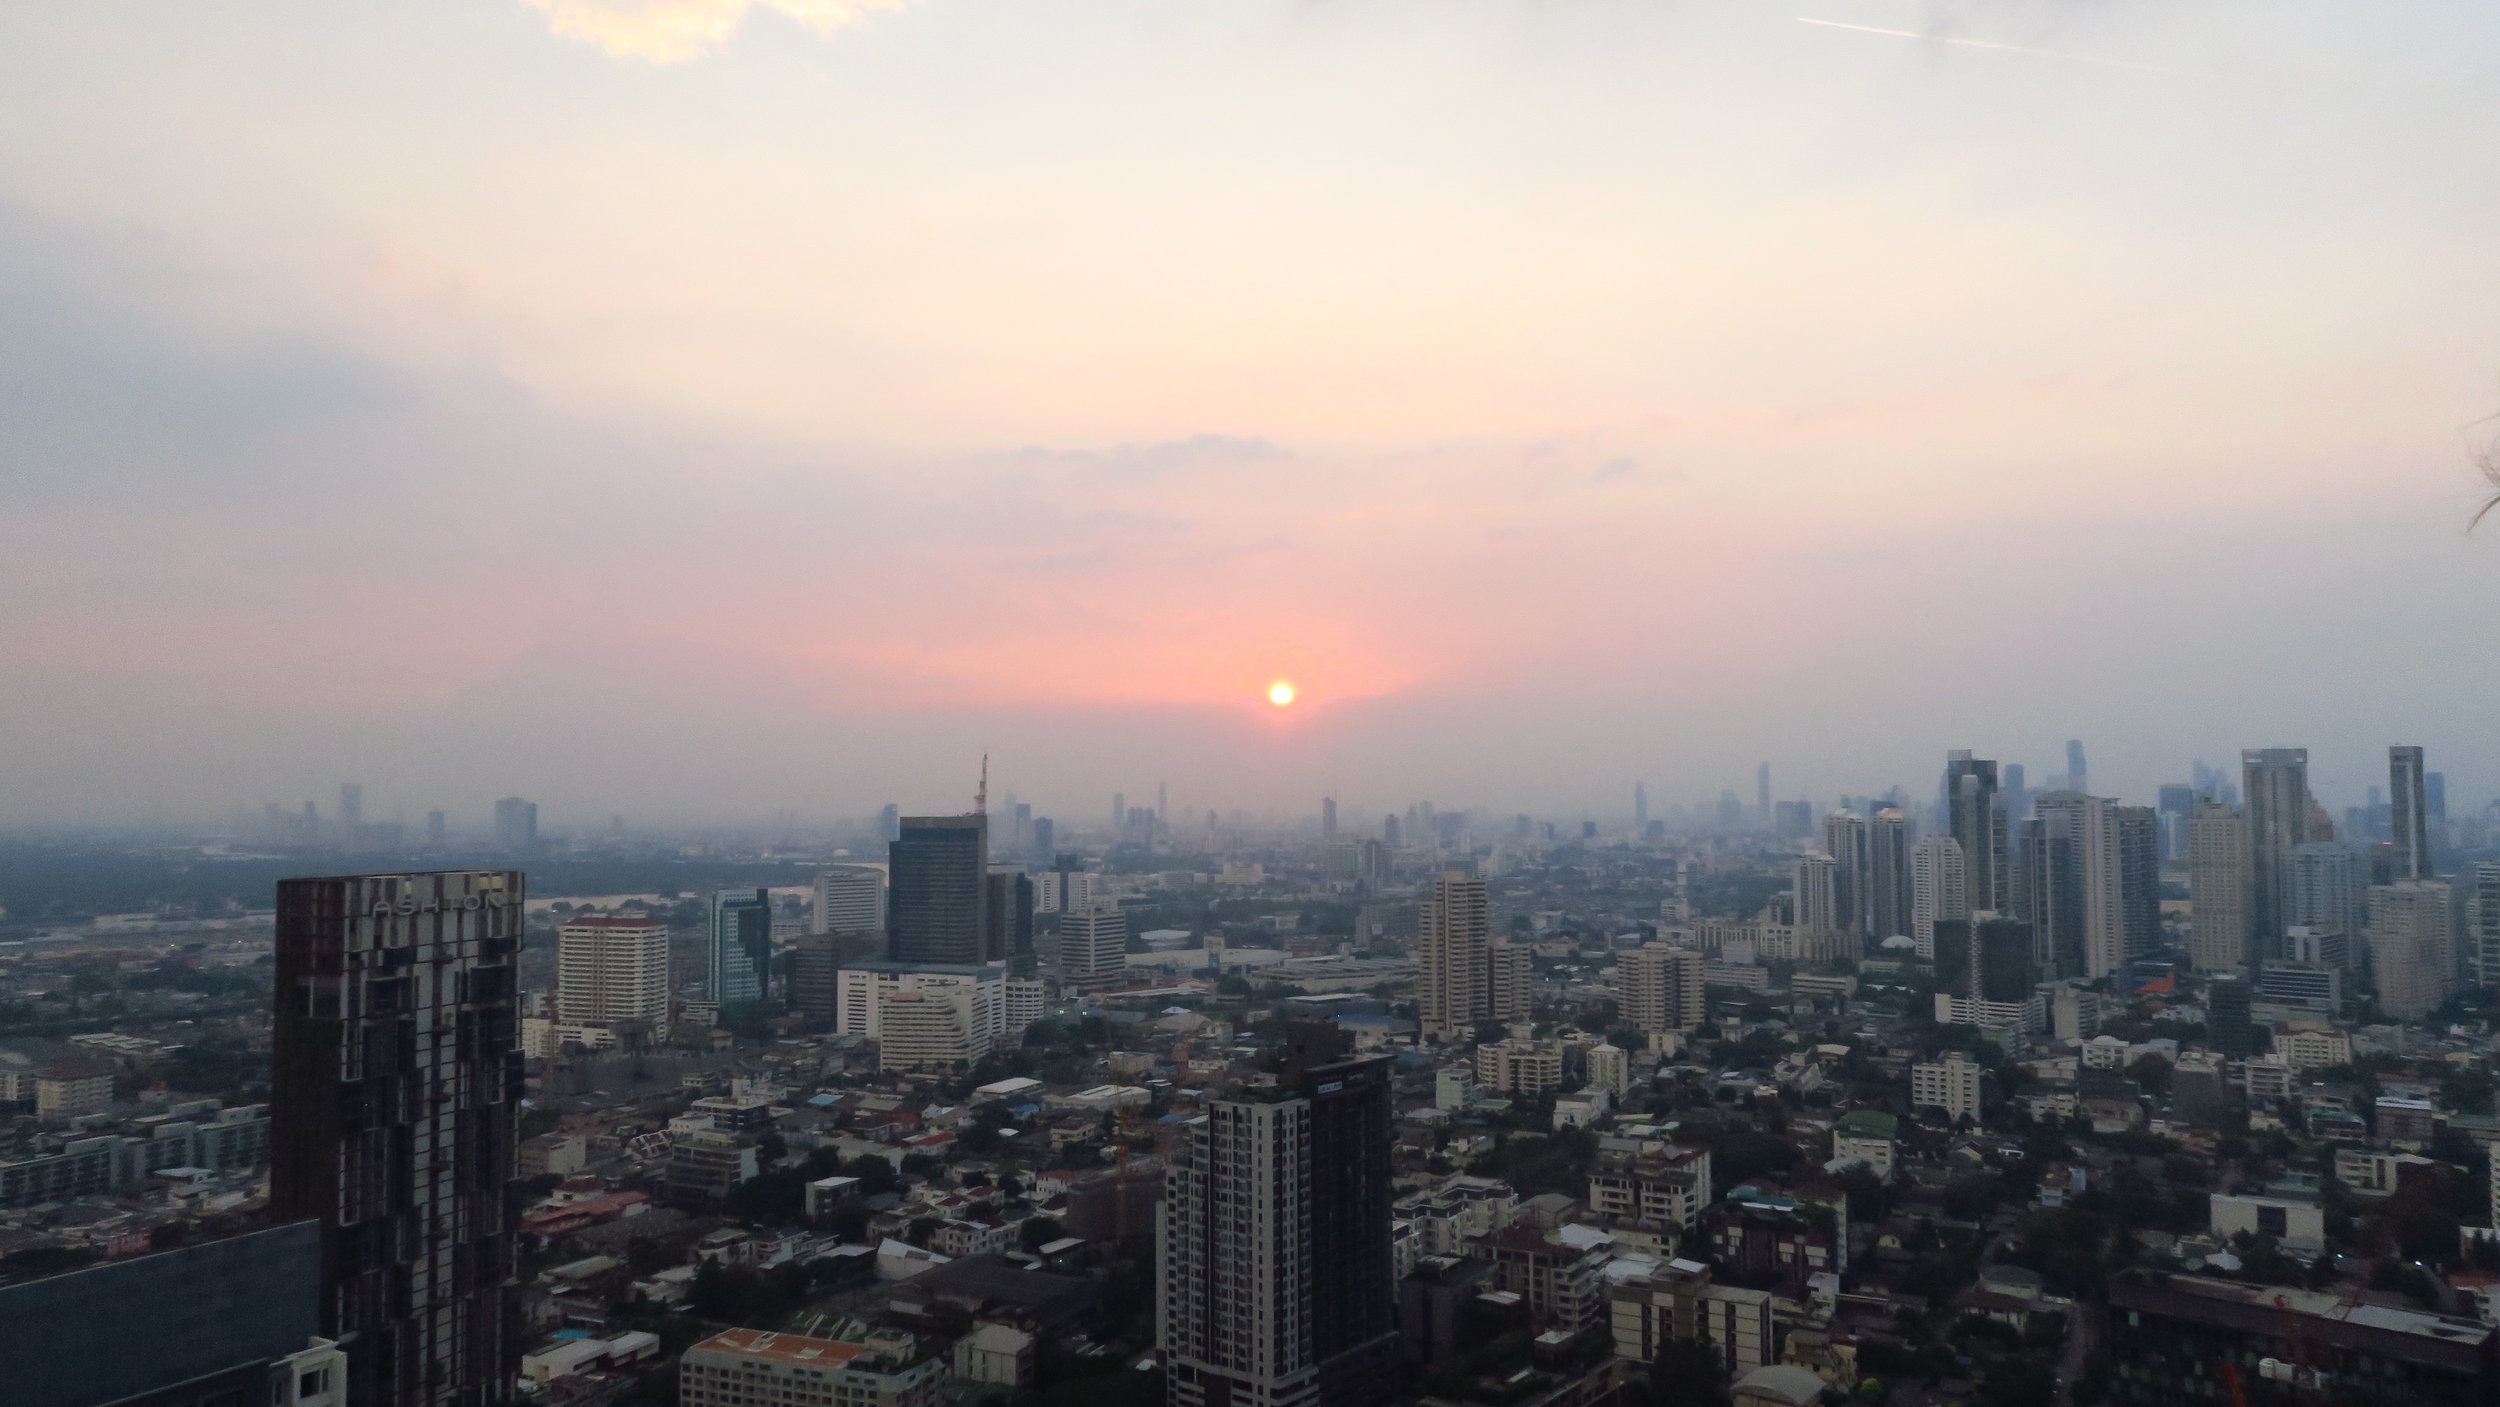 Bangkok was every bit as bonkers and beautiful as this photo depicts.